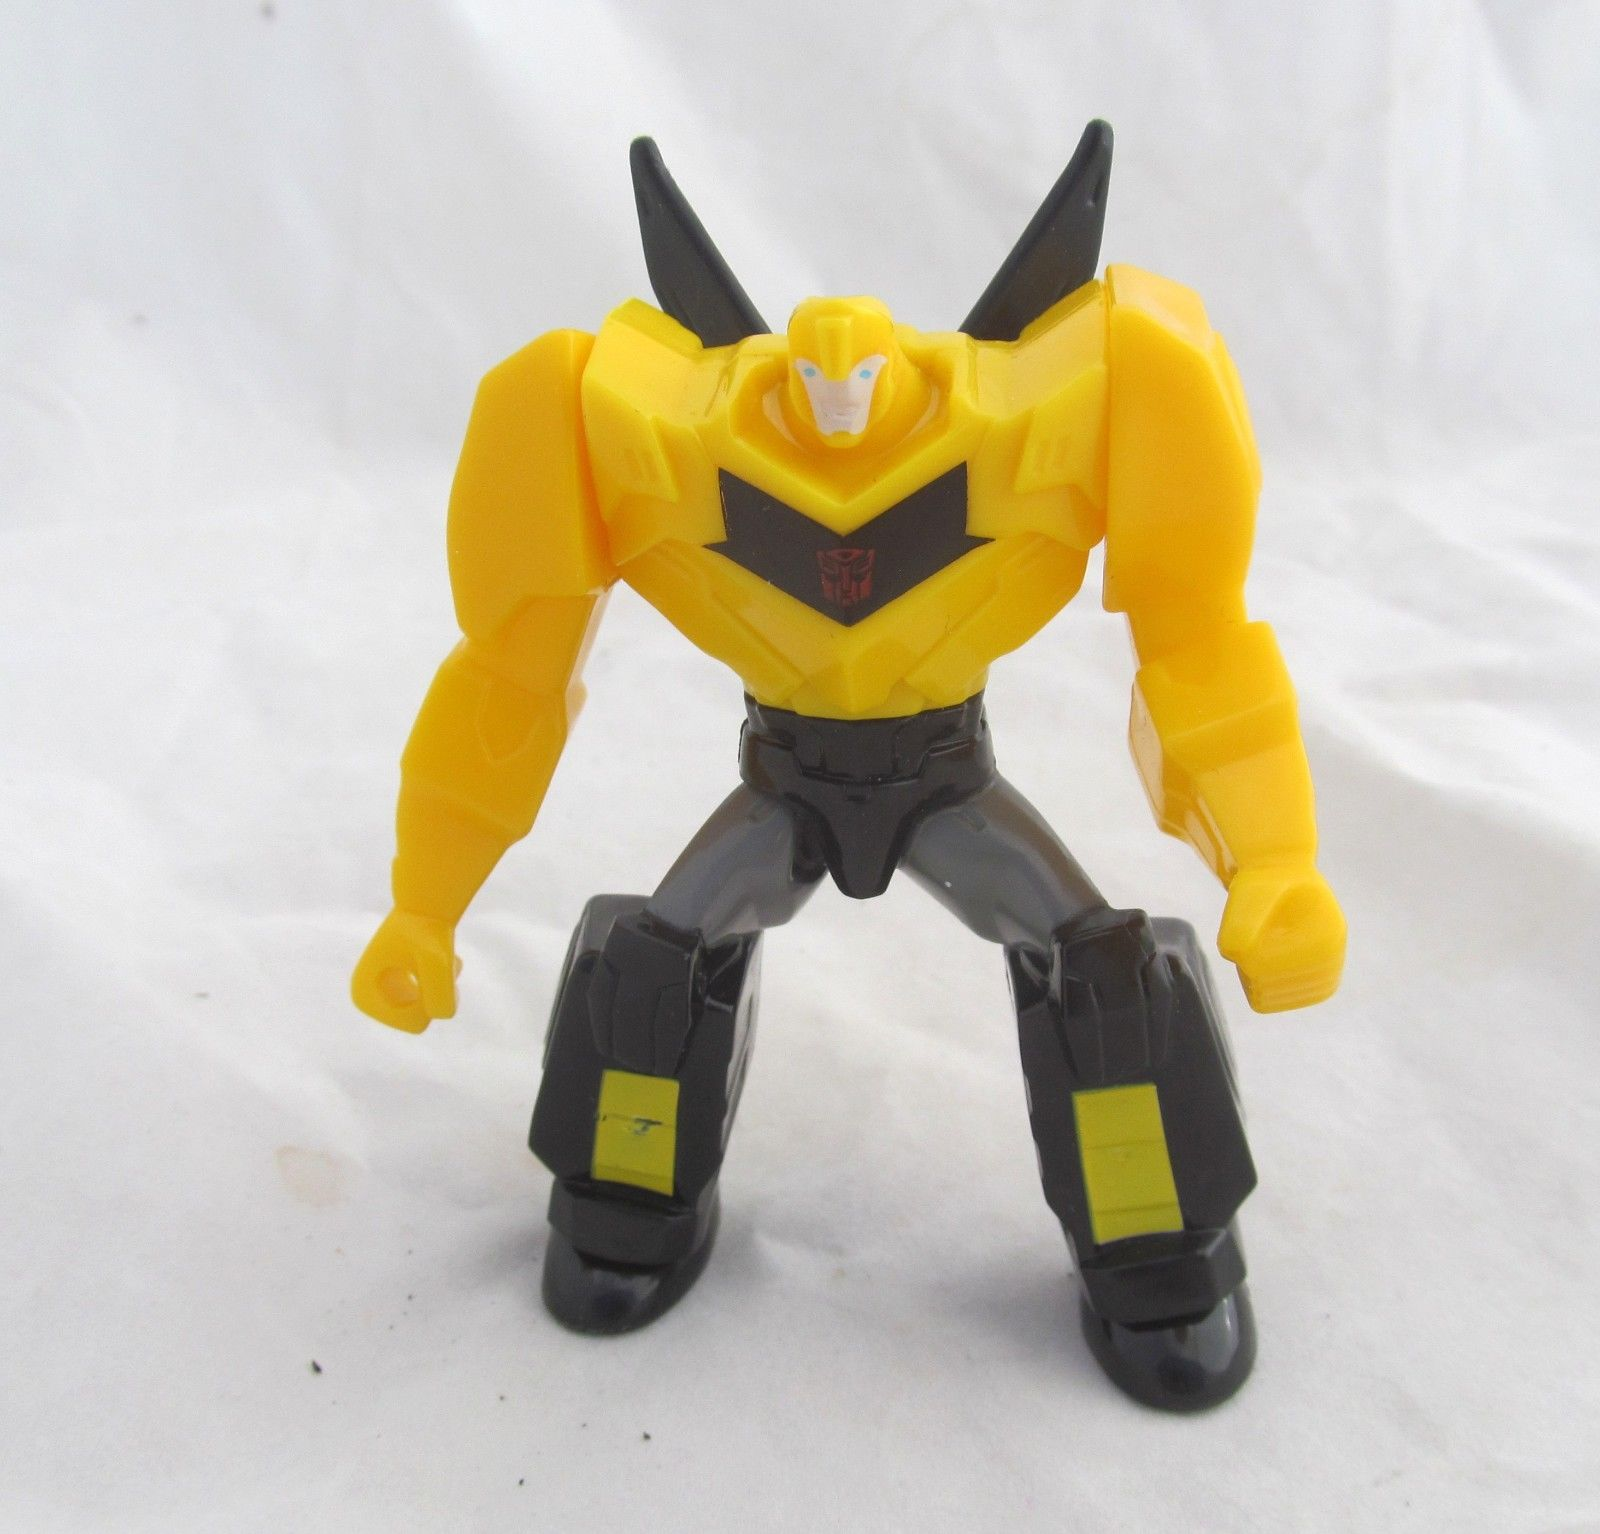 Transformers Cake Toppers - Shop Transformers Cake Toppers Online